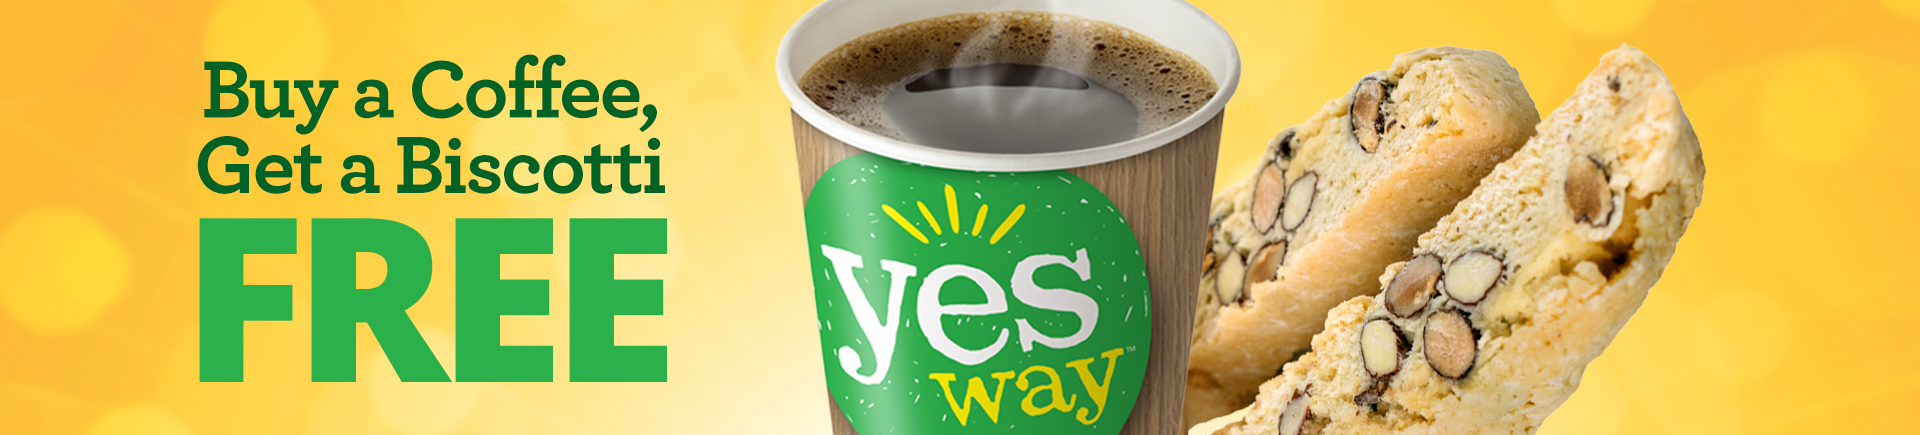 YES062817_1920x435_Coffee